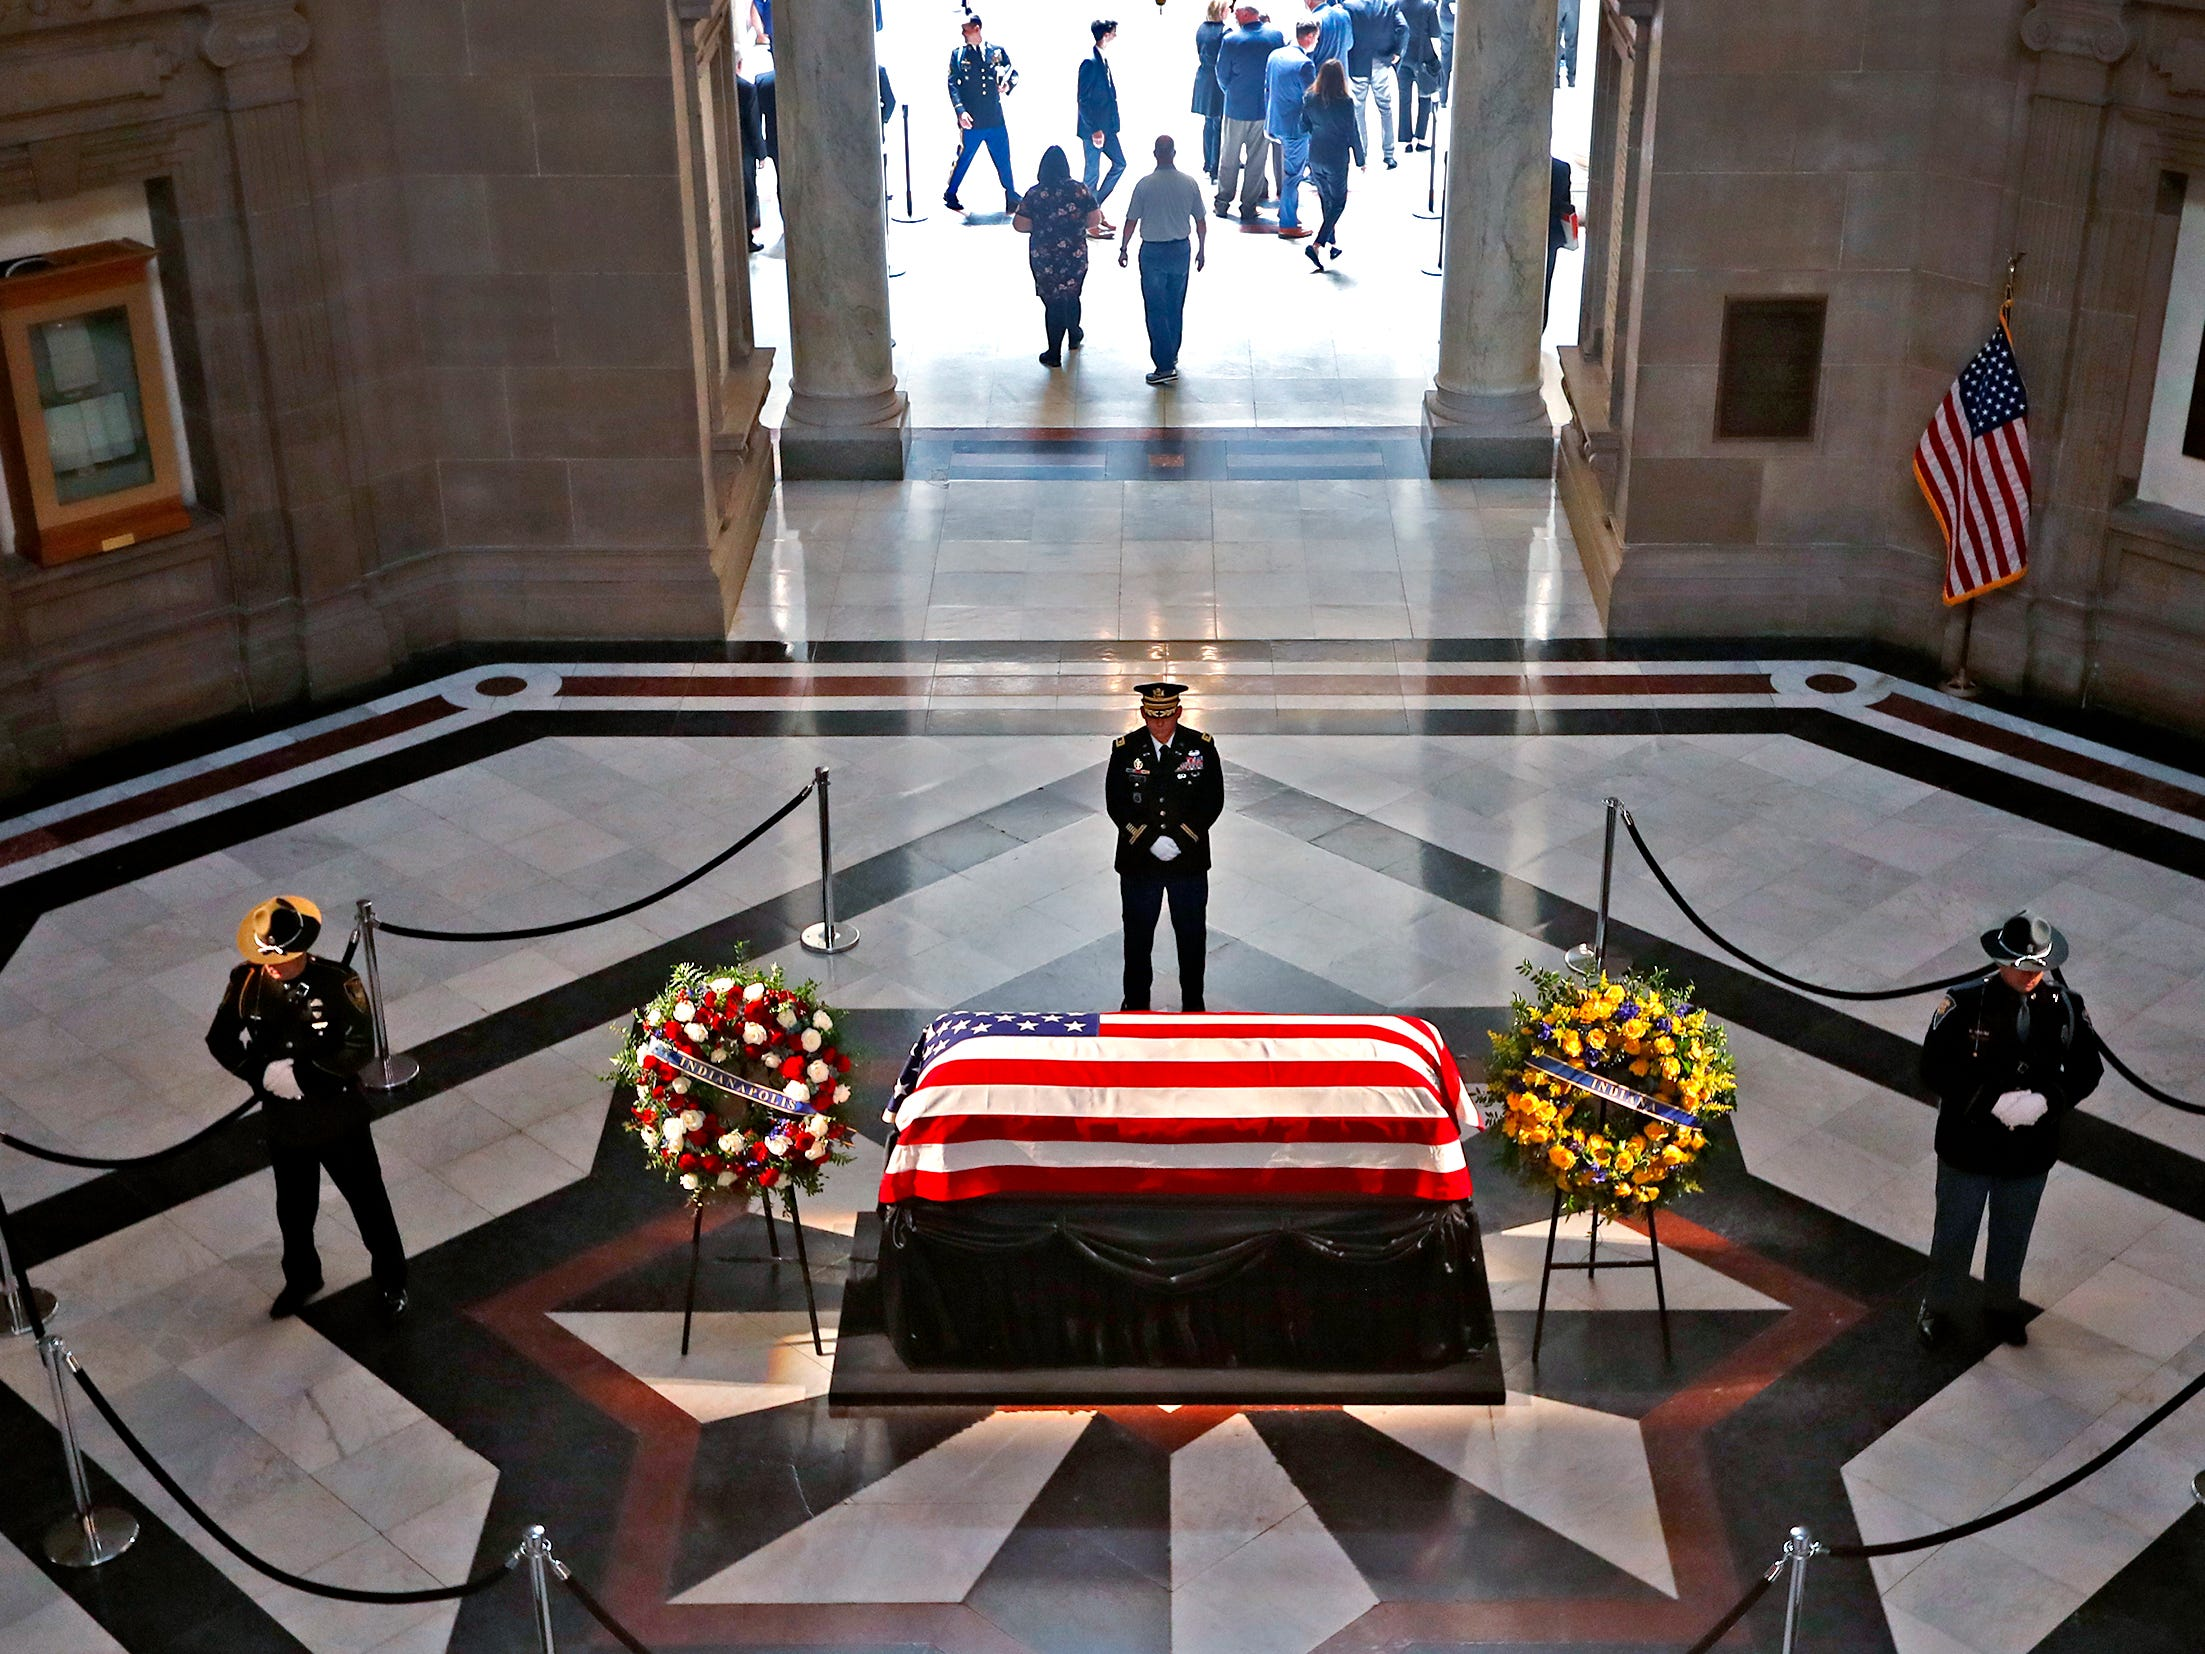 Former Senator and Mayor Richard Lugar lies in state with standing honors under the Statehouse rotunda, Tuesday, May 14, 2019.